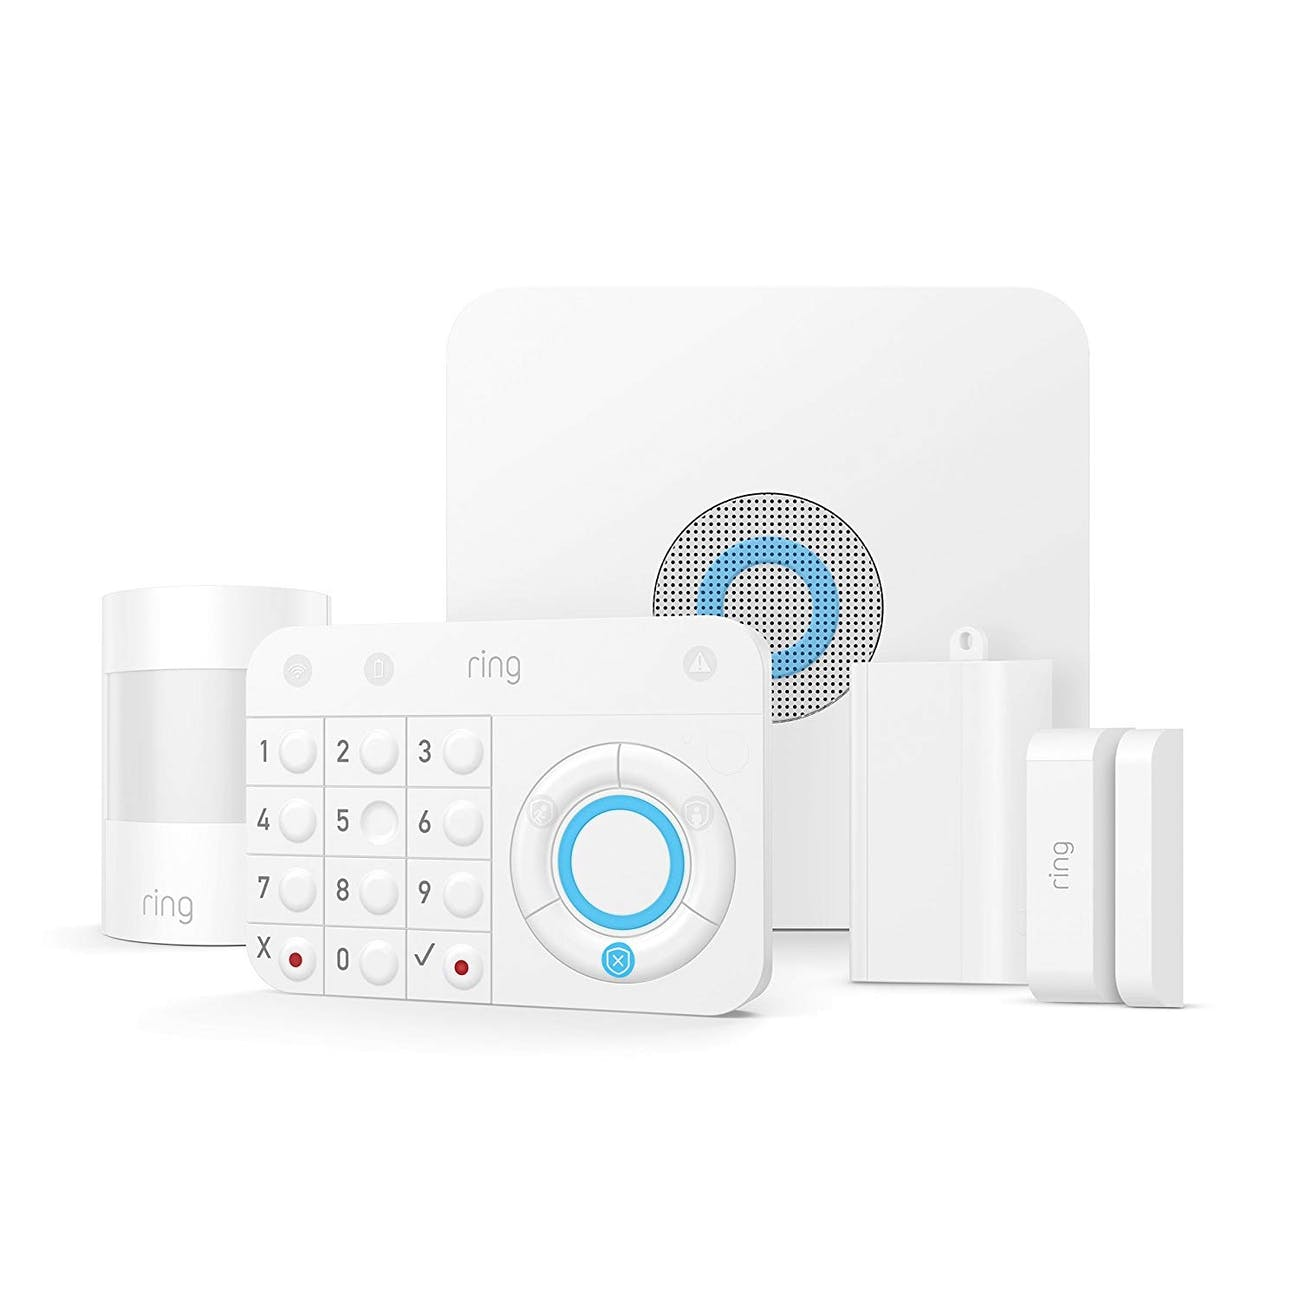 These Smart Security Systems Will Protect Your Home | Inverse